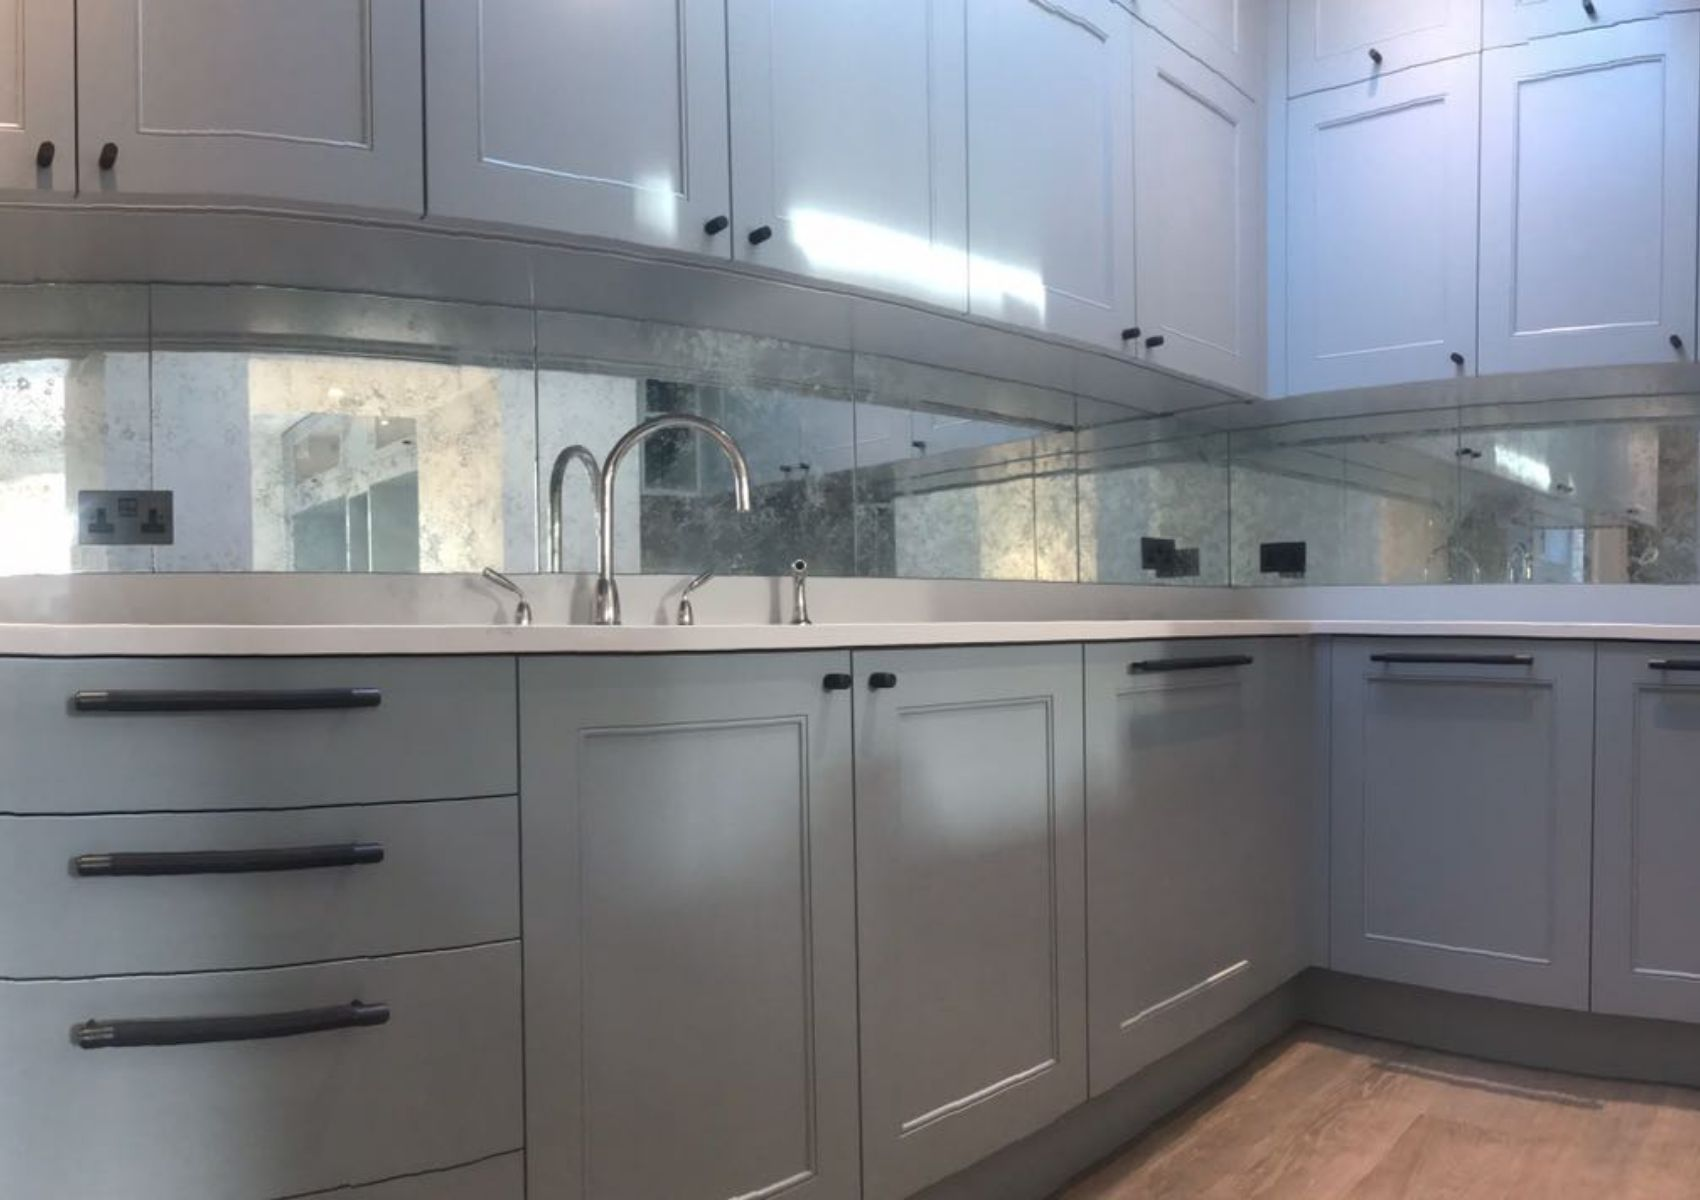 White Vintage Splashback in Kitchen